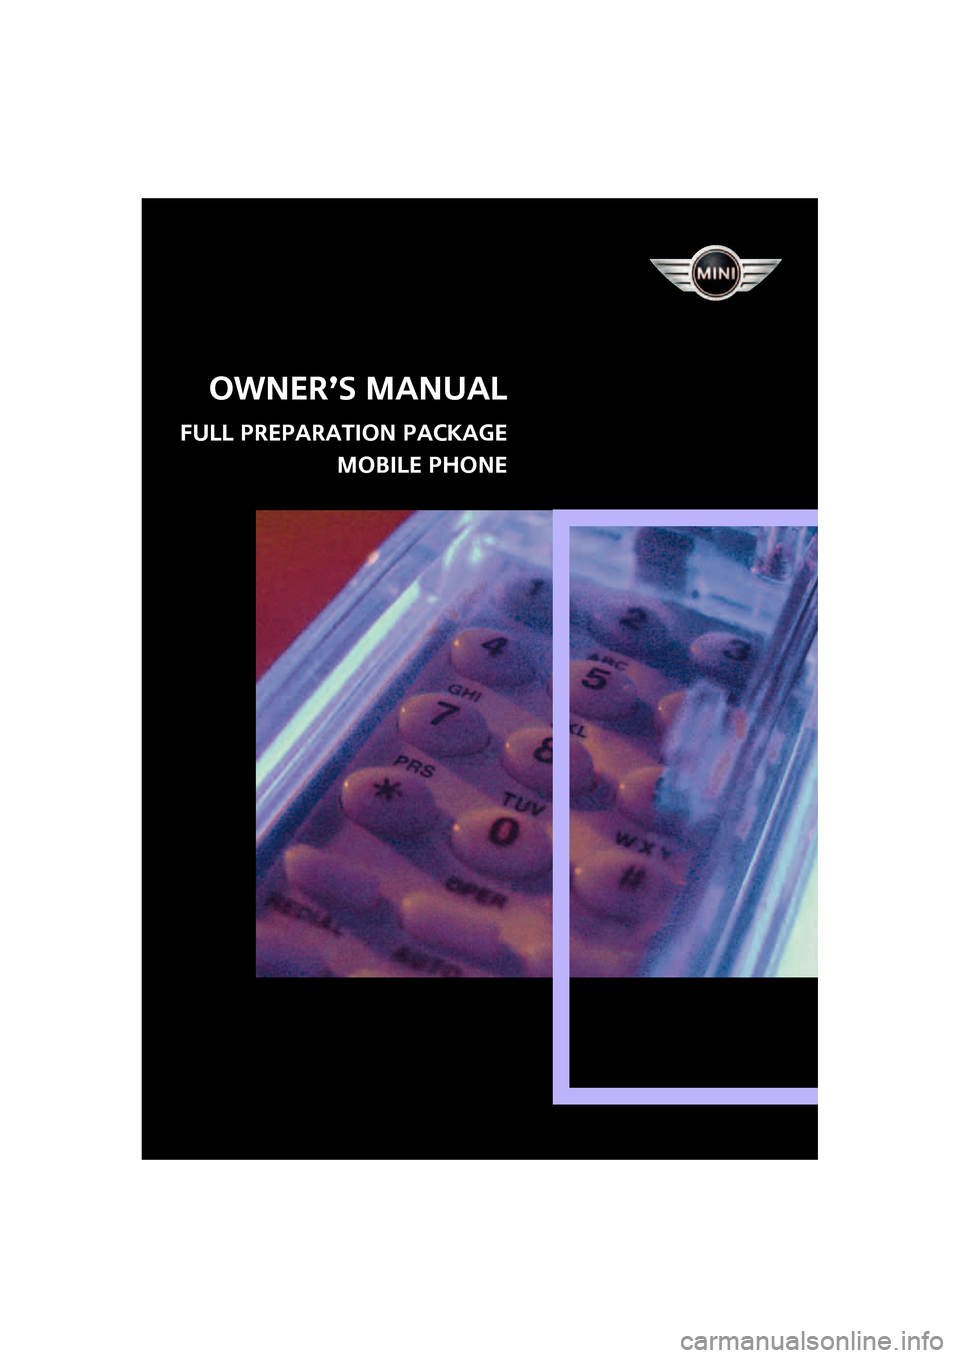 MINI Clubman 2008  Owners Manual (Mini Connected) Owner's Manual FULL PREPARATION PACKAGE MOBILE PHONE ba.book  Seite 1  Freitag, 6. Juli 2007  10:48 10